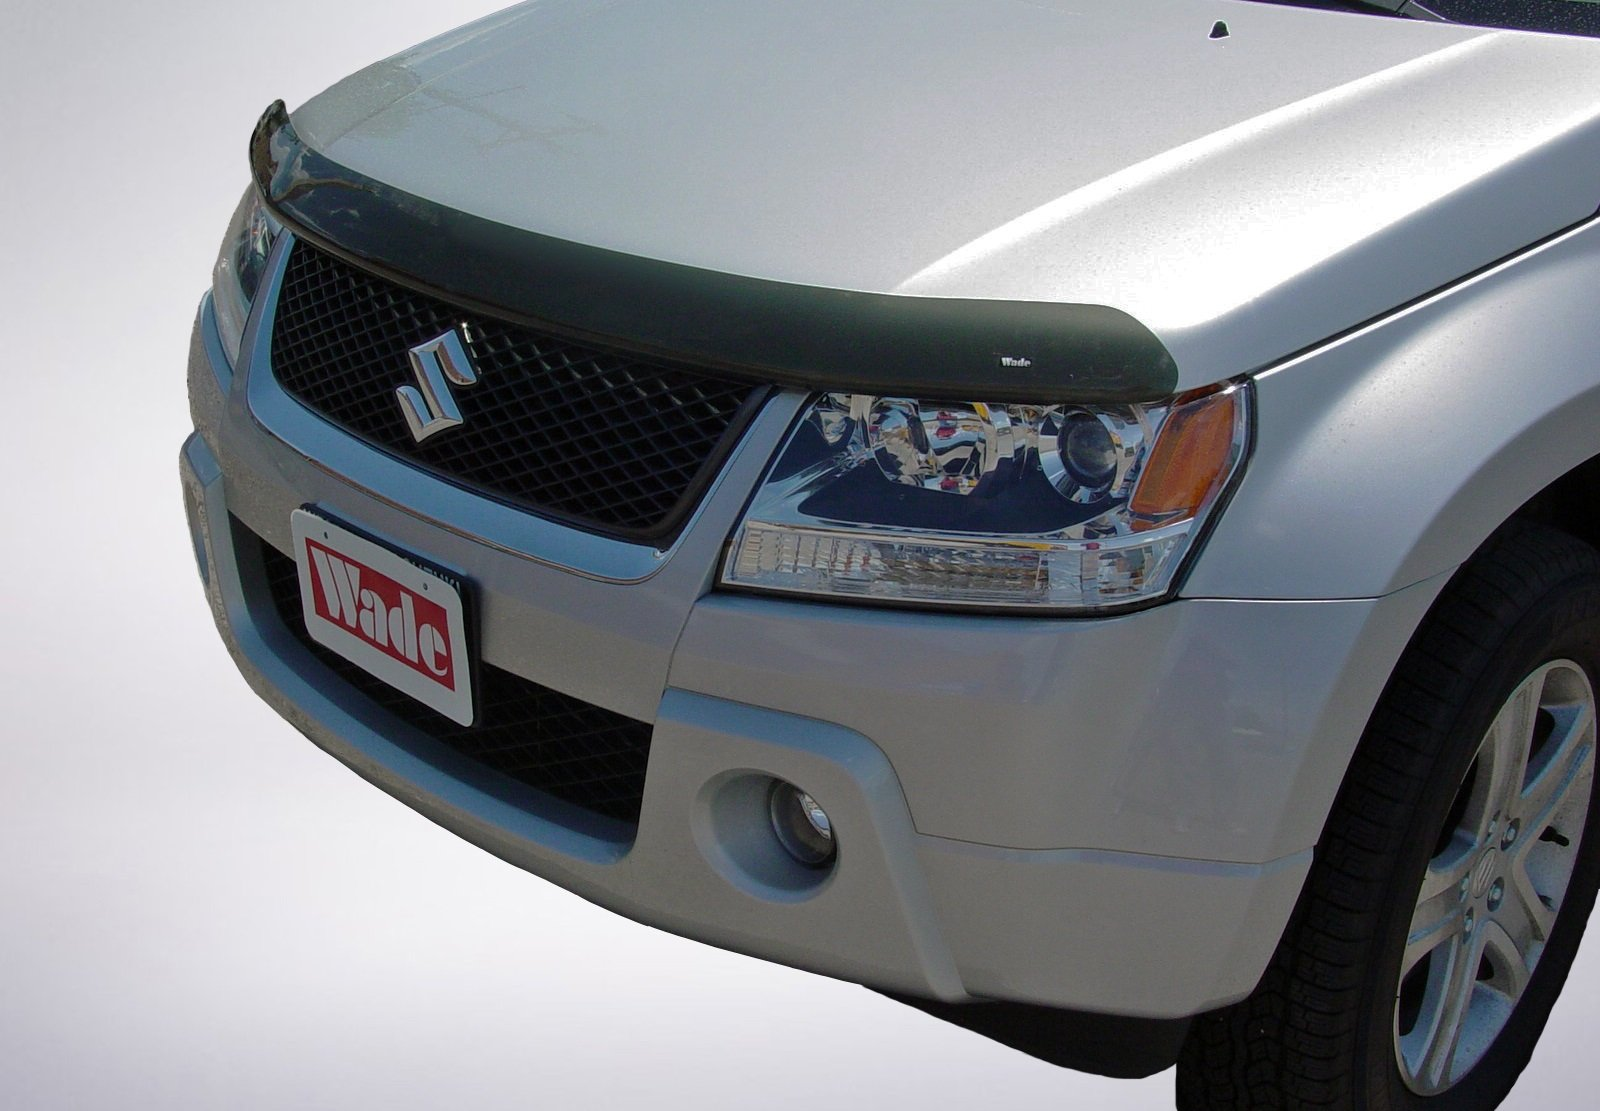 2008 Suzuki Grand Vitara Bug Shield